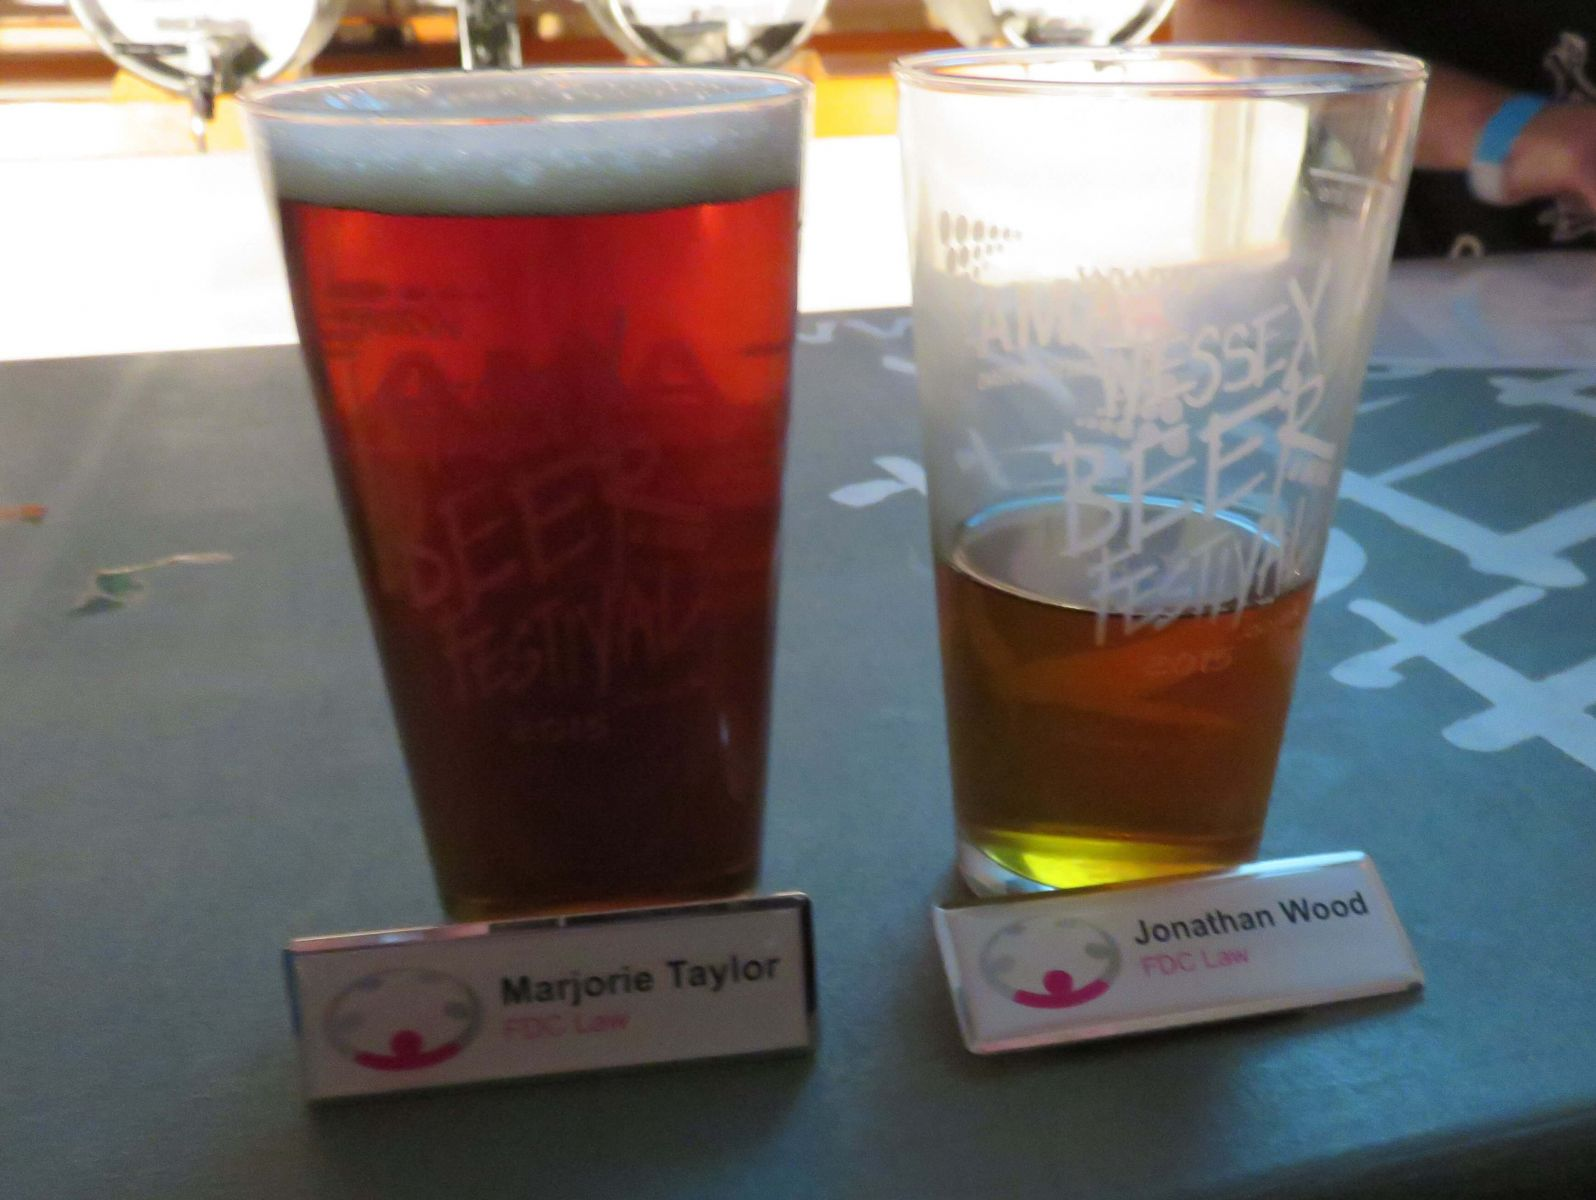 two beer glasses, one full, one half empty, plus 2 name badges